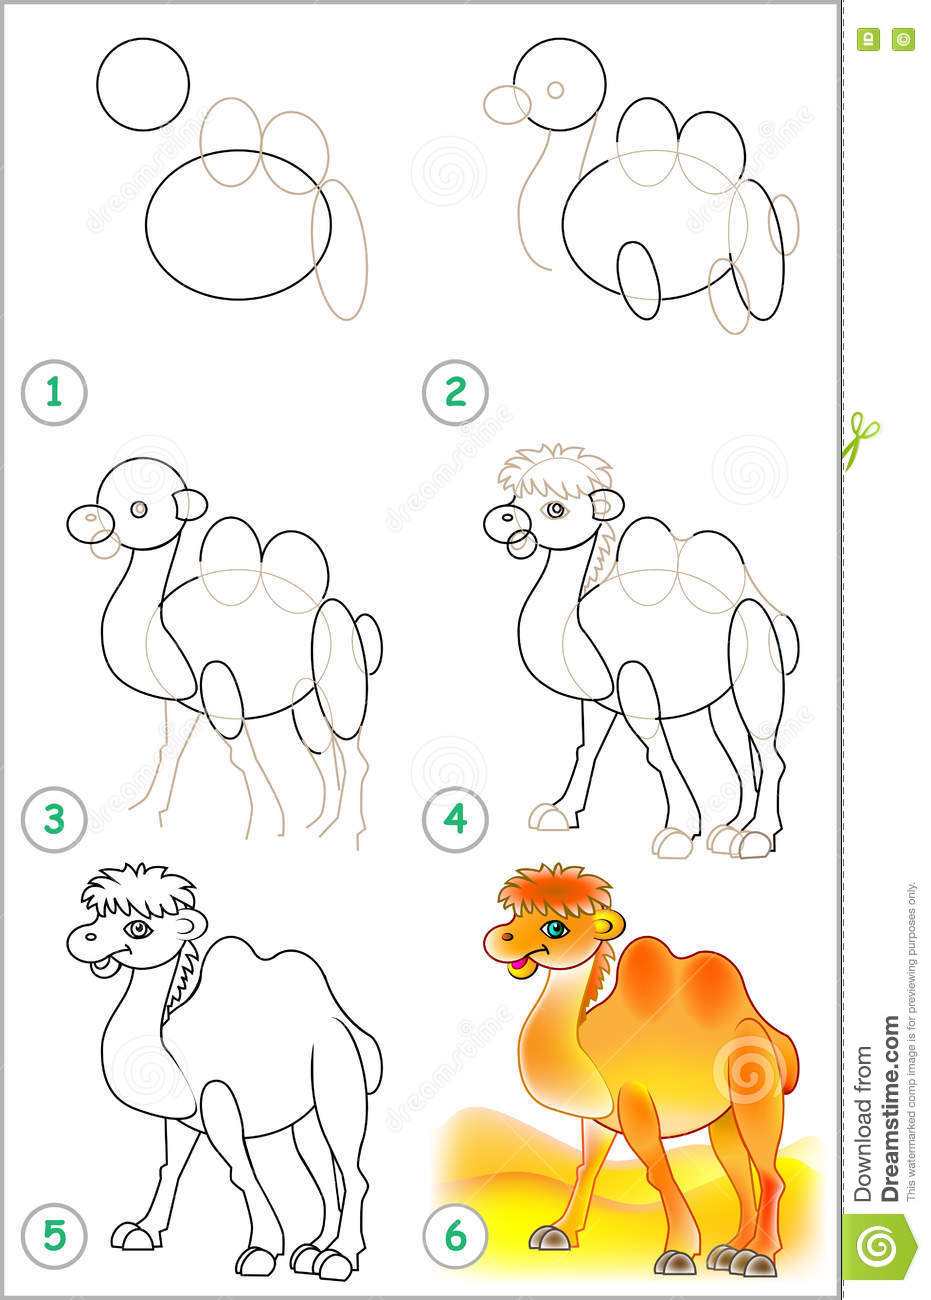 Uncategorized How To Draw A Camel Step By Step page shows how to learn step by draw a camel stock vector camel